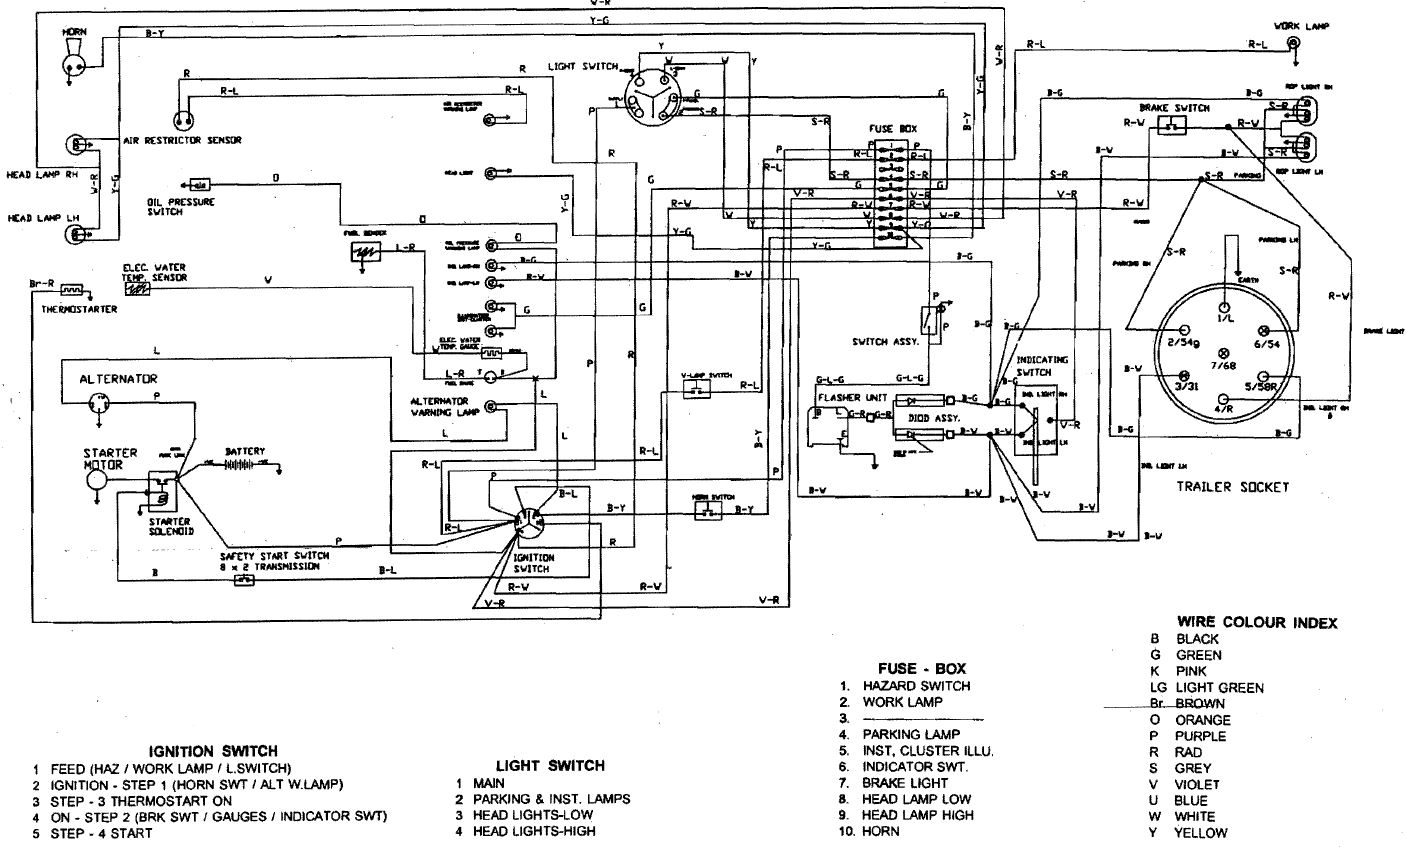 Ignition switch wiring diagram – John Deere L130 Wiring Diagram